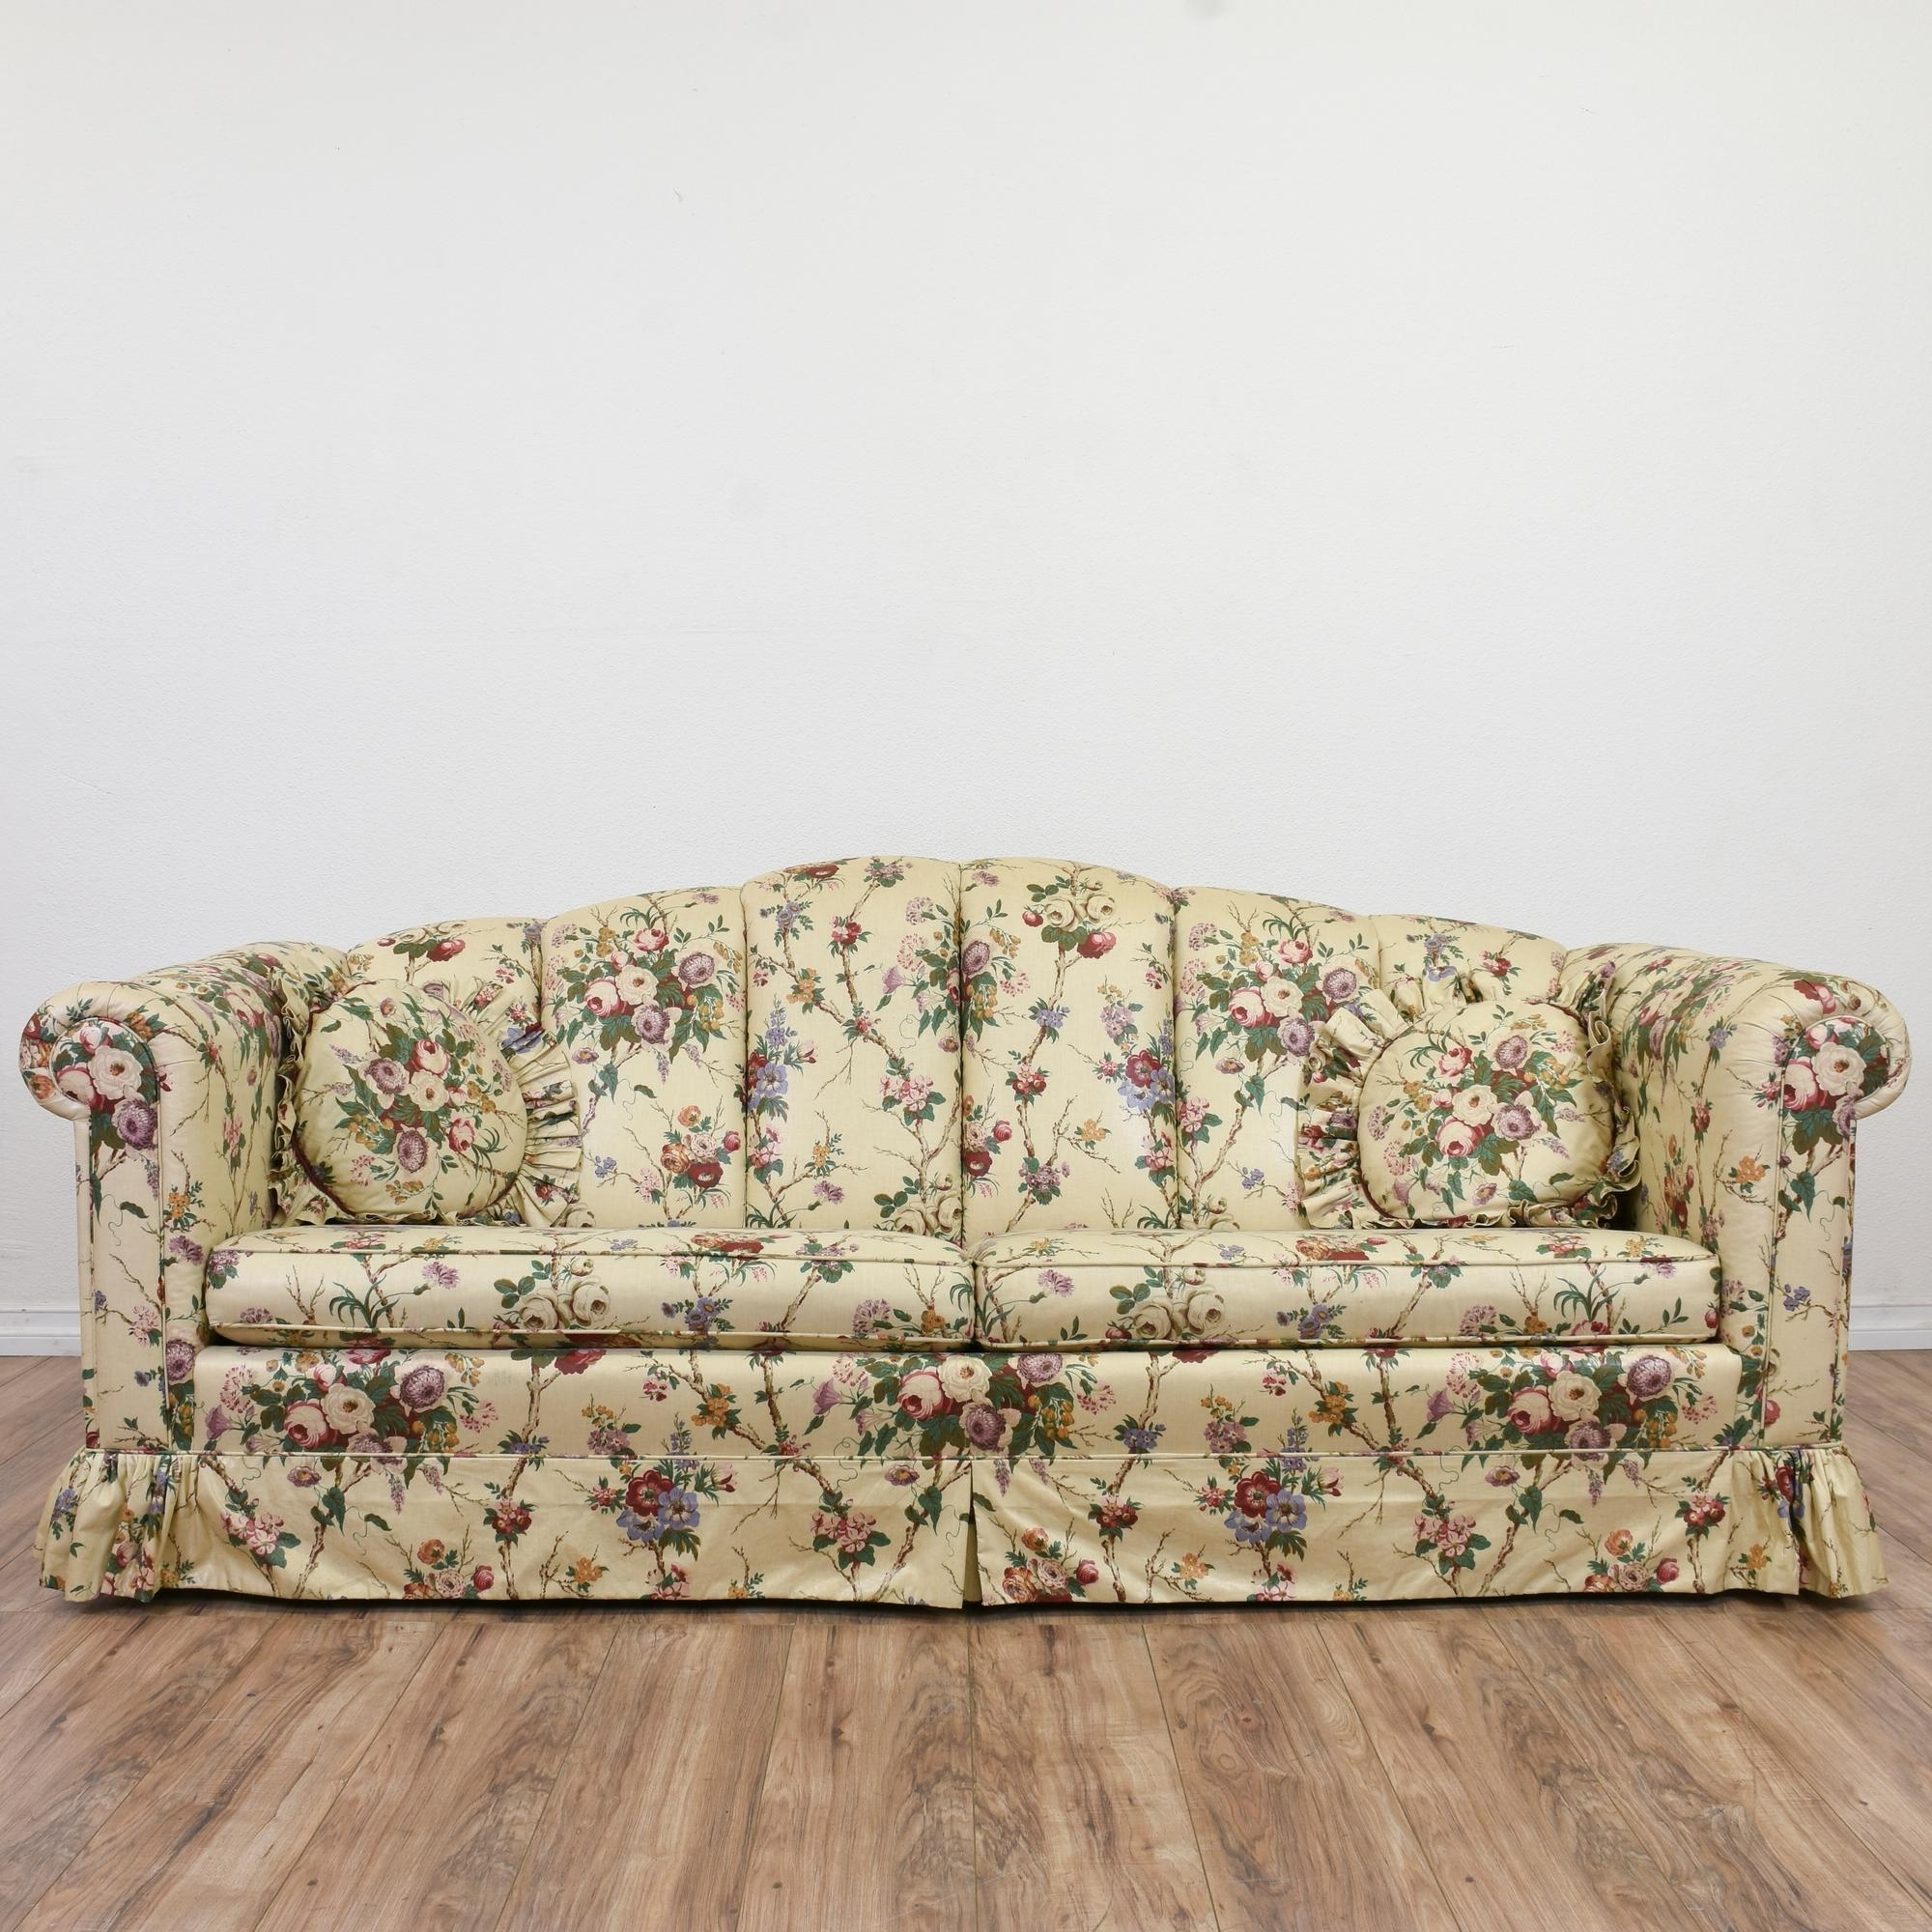 This Sofa Is Upholstered In A Durable Off White Beige, Pink And With Regard To Most Recent Chintz Sofas (View 14 of 15)